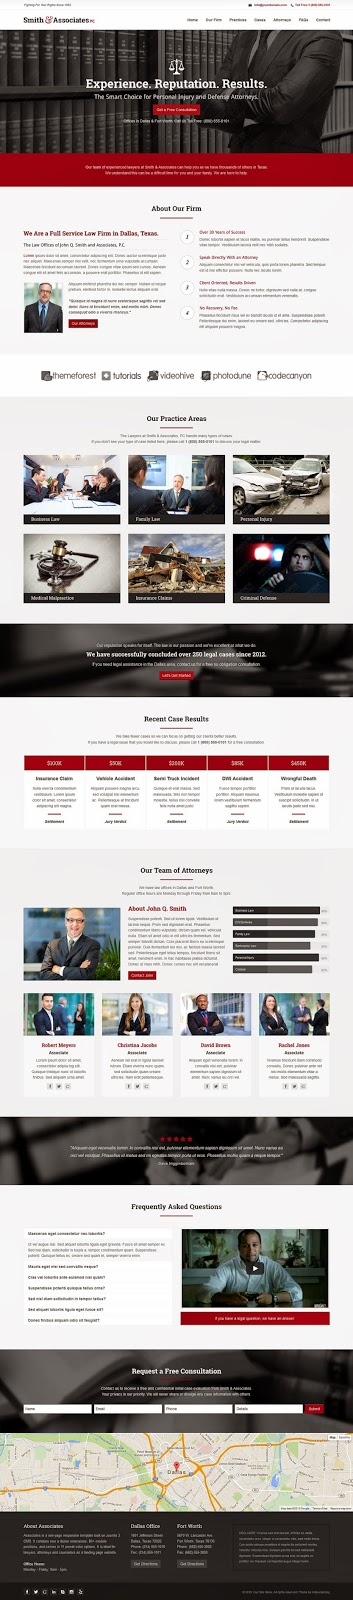 Best Lawyer and Attorney Joomla Template 2015